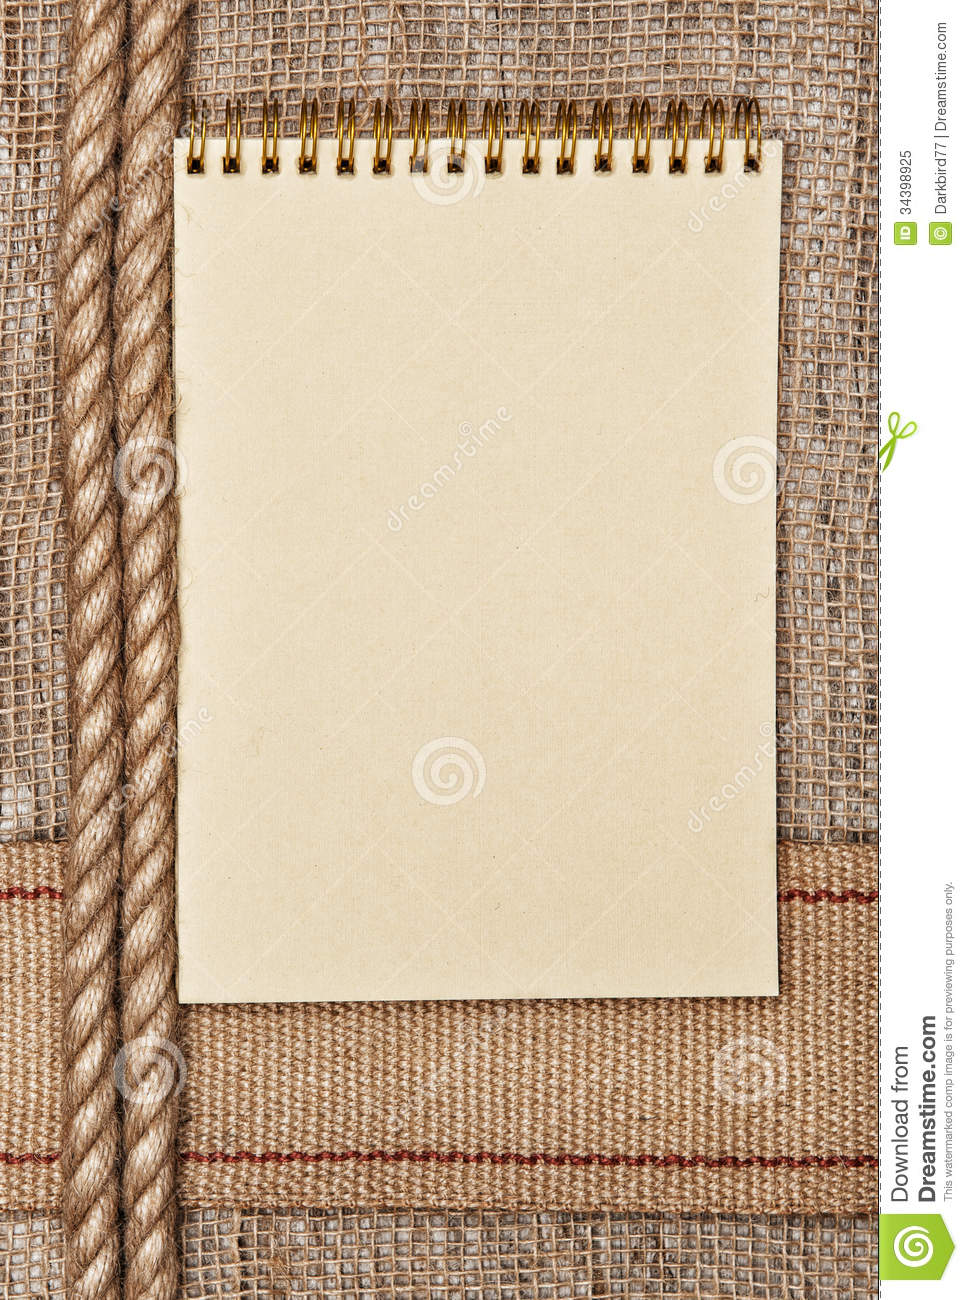 Burlap Background With Sacking Ribbon Rope And Notebook